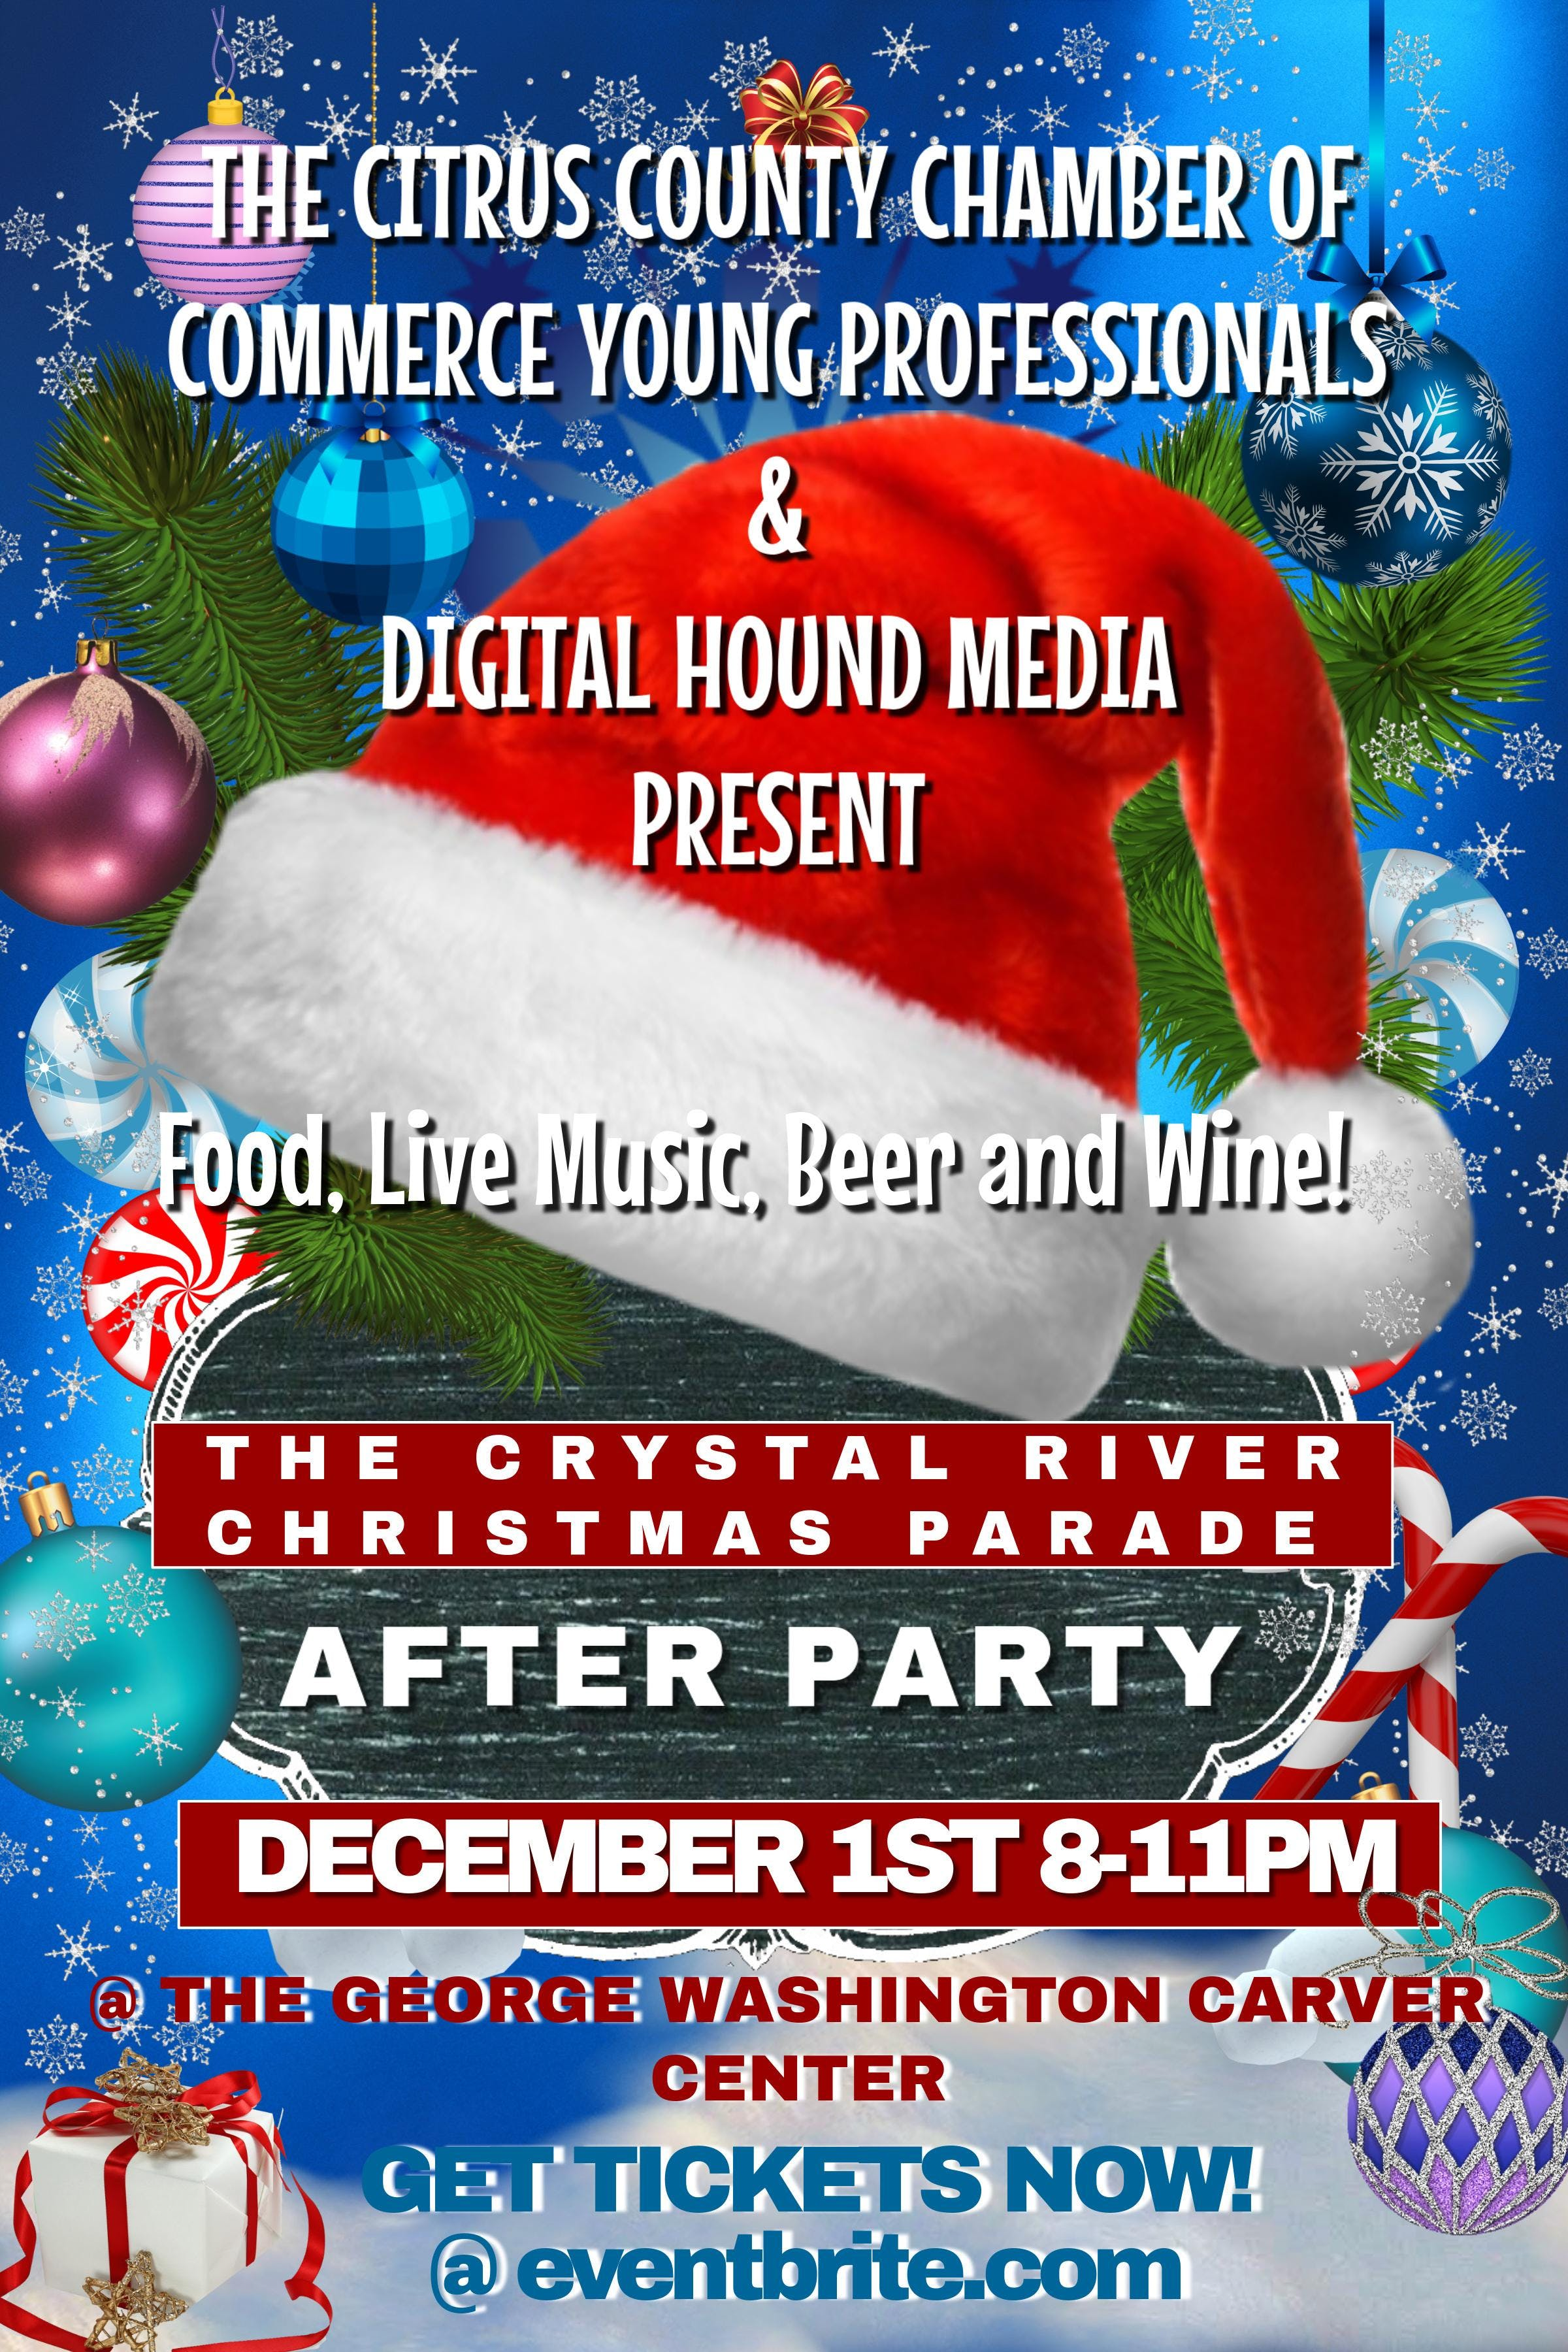 Crystal River Parade After Party, North Central Florida FL - Dec 1 ...